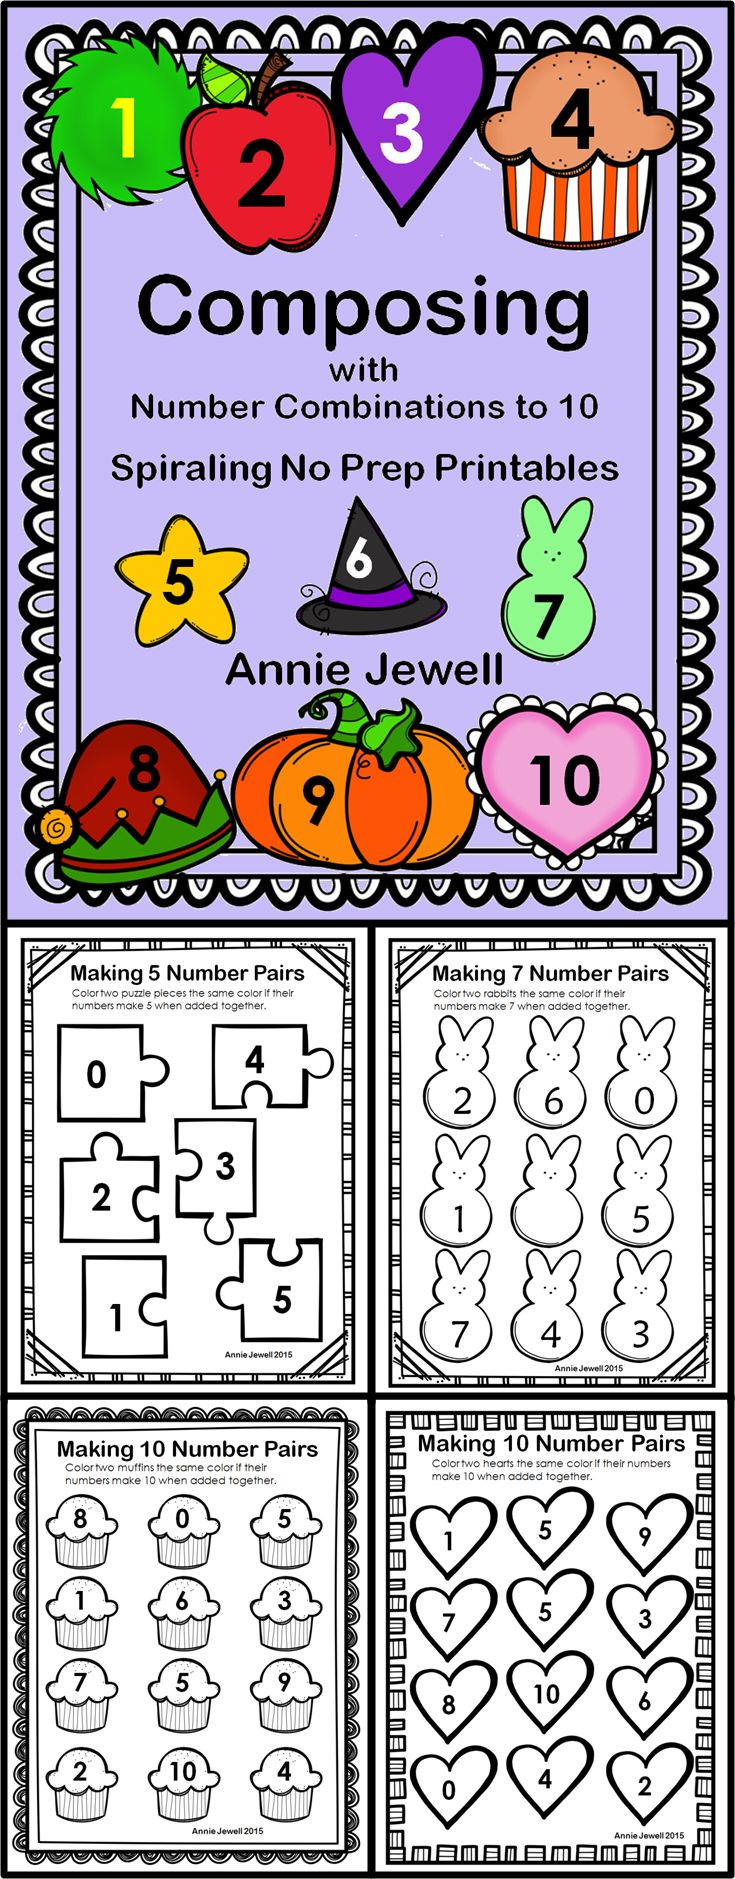 Composing with Number Combinations to 10 Kindergarten COMMON CORE KOA 3 and KOA 4, No Prep Printables, 20 Pages of Building with Number Pairs, Maintain Skills with Spiraling Review ***Many monthly, holiday, or seasonal themes***Great for centers, independent work***Kindergarten, 1st Grade, Home School***Choices within each theme for differentiation